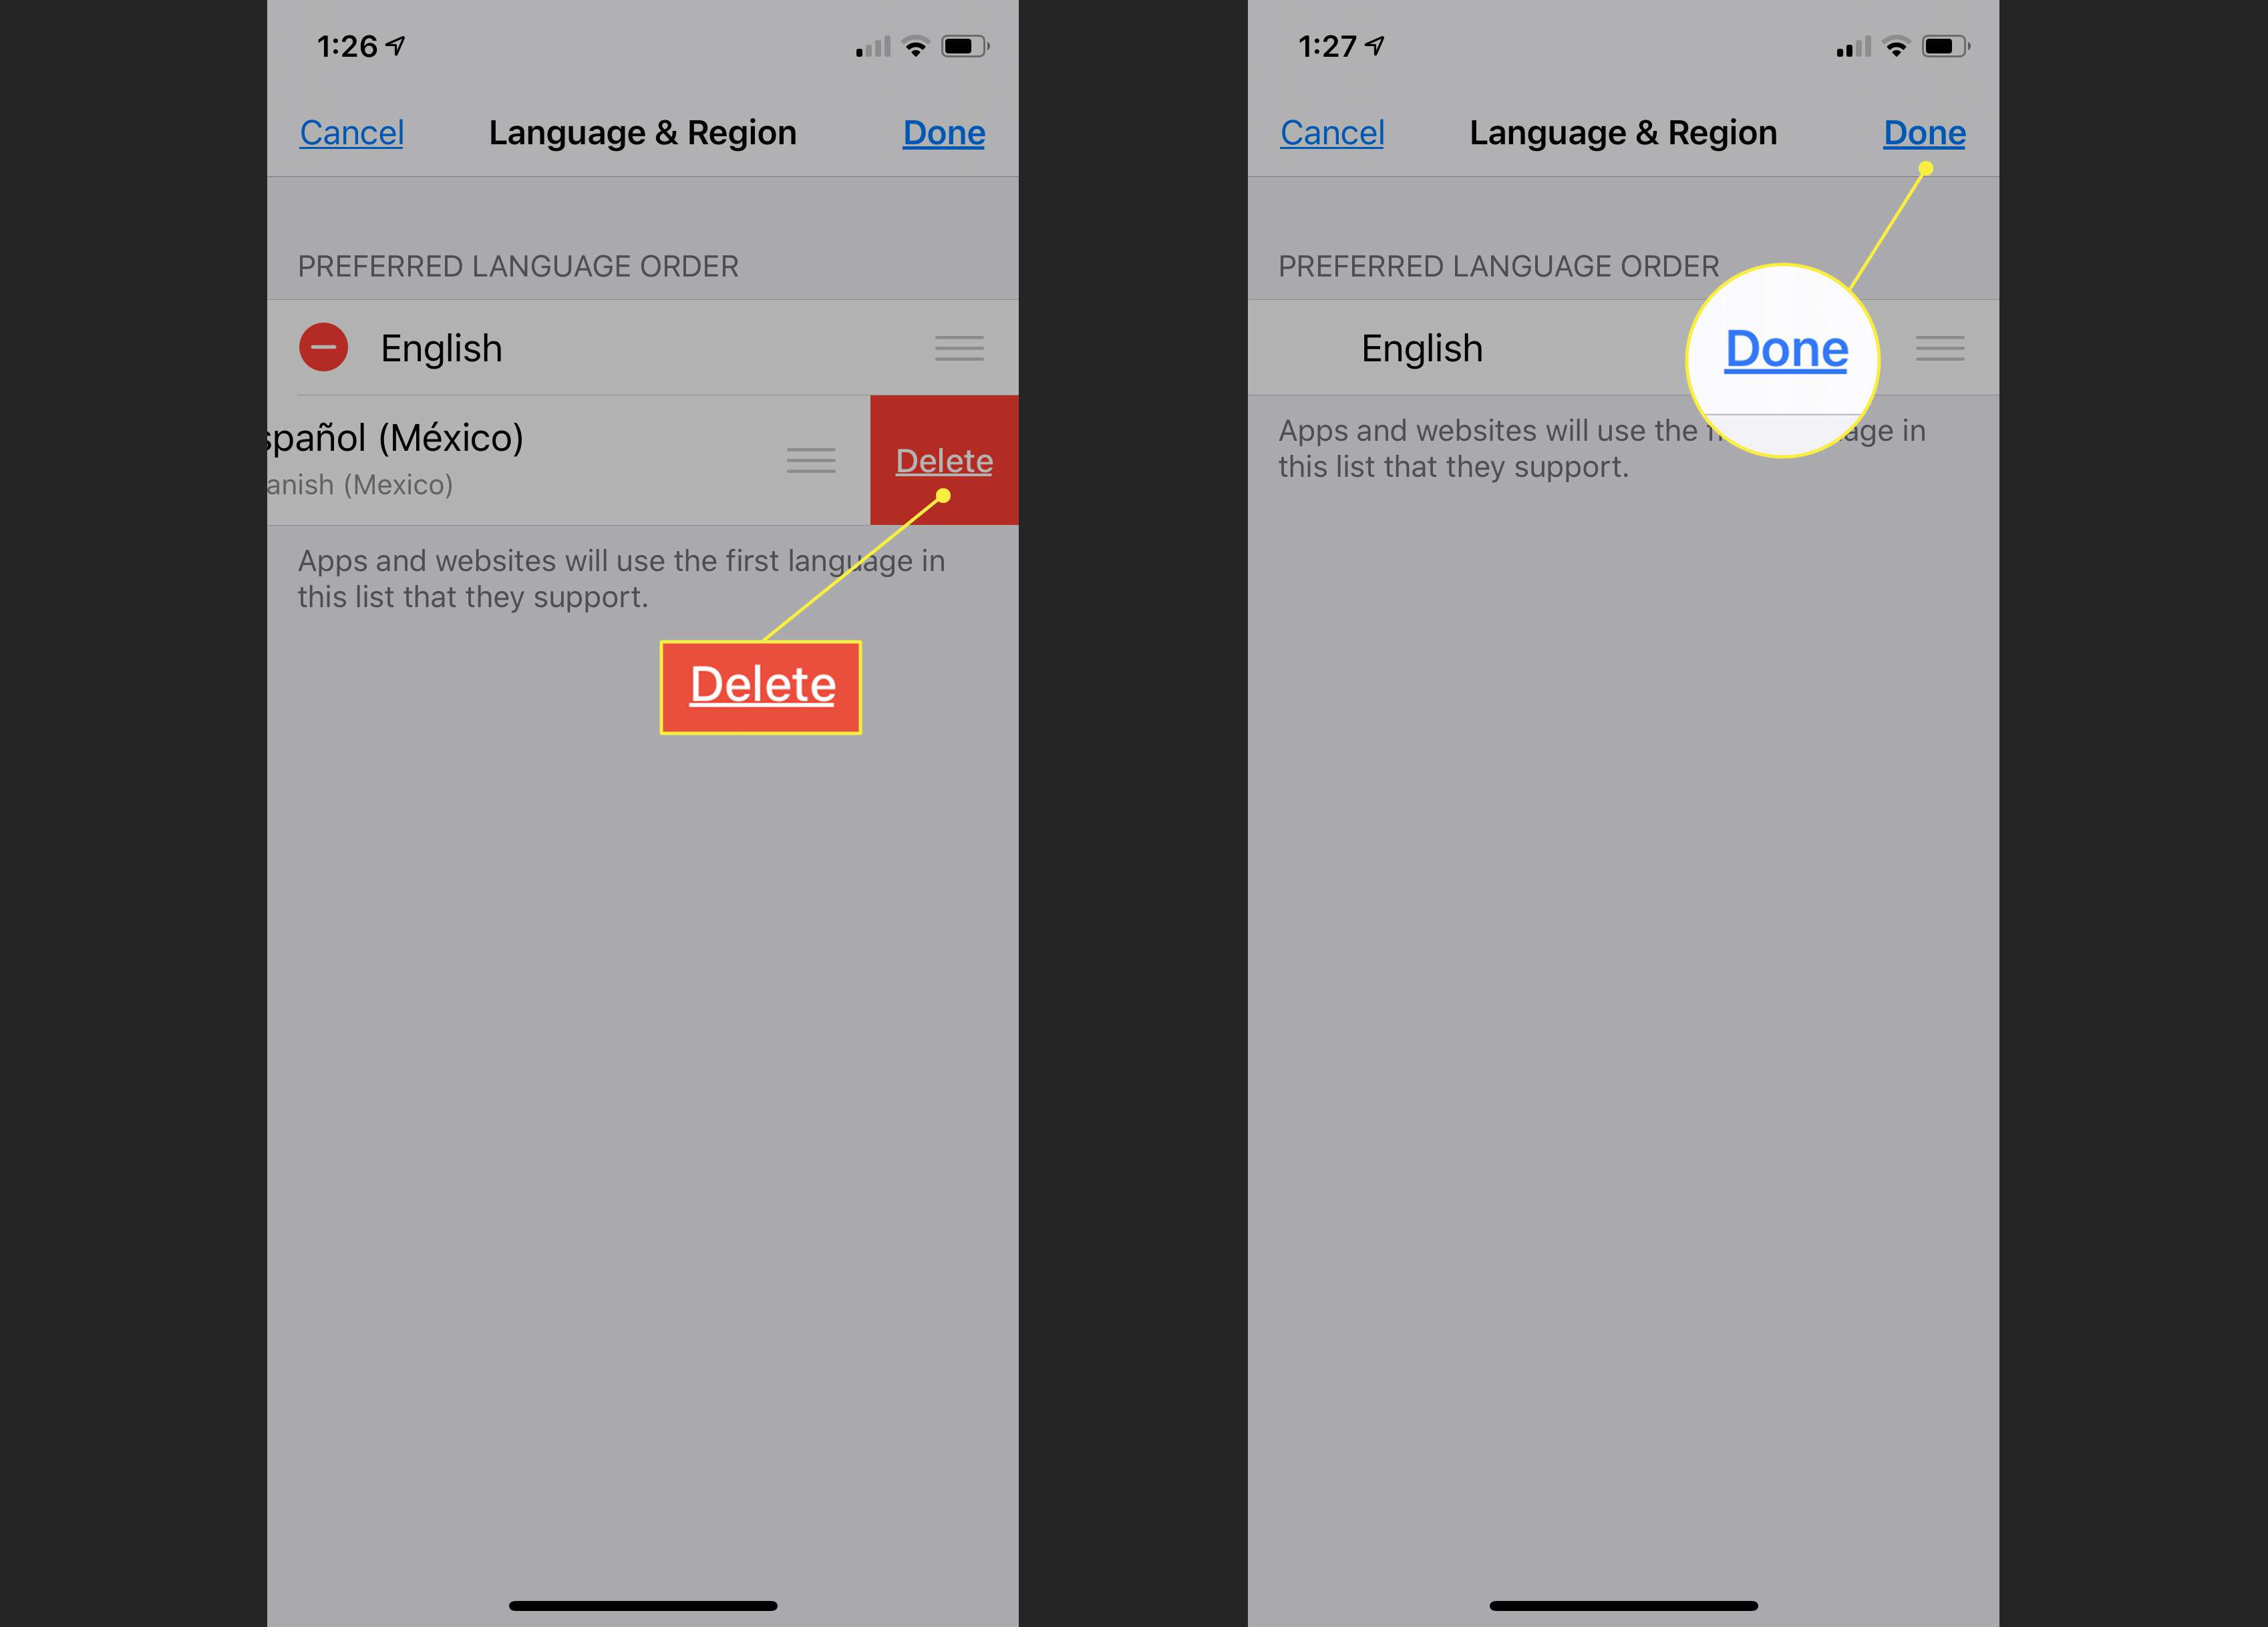 Deletion of languages in iOS Language & Region preferences